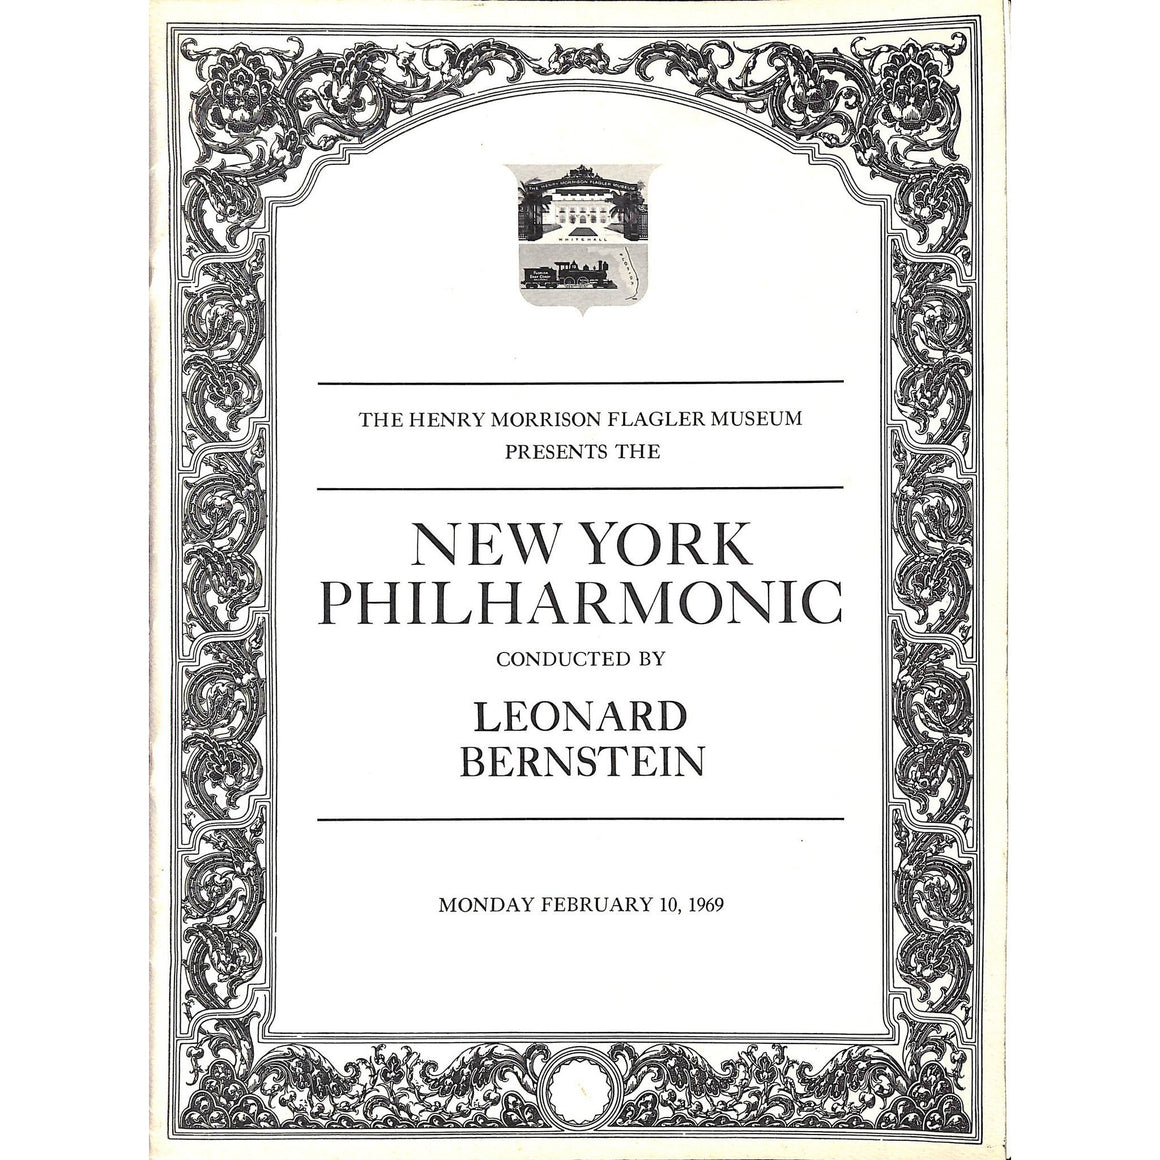 New York Philharmonic Conducted by Leonard Bernstein Monday February 10, 1969